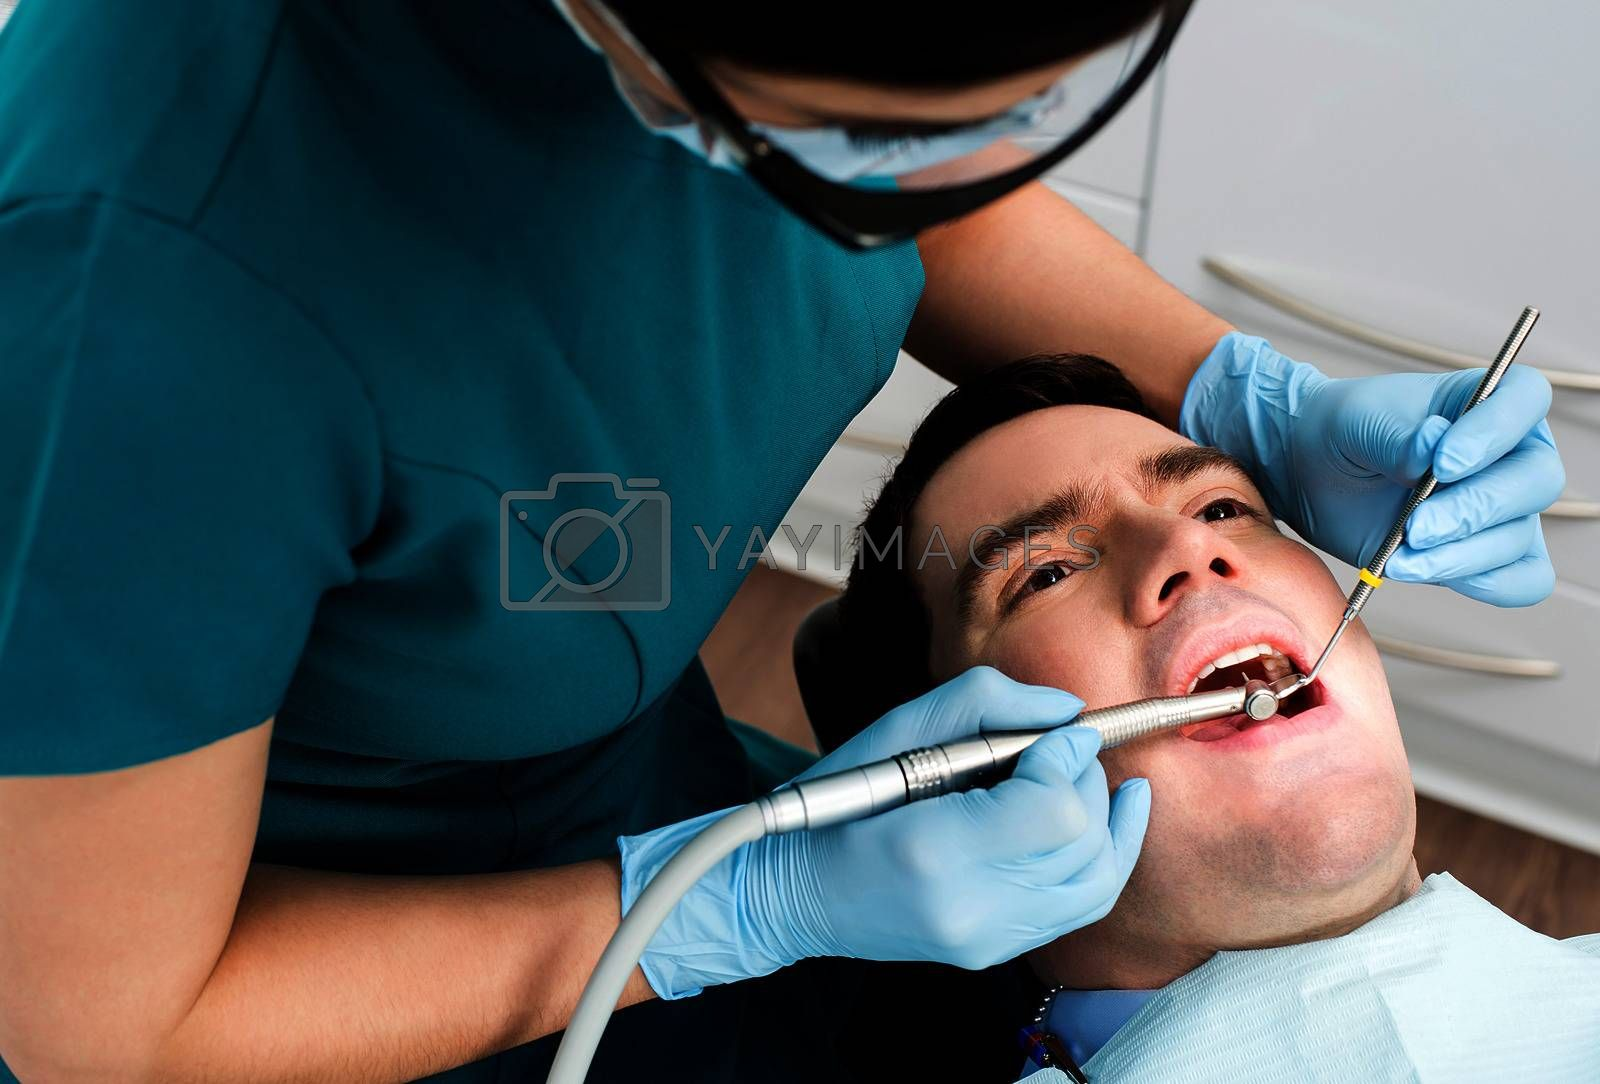 Male with open mouth during oral checkup at dentist